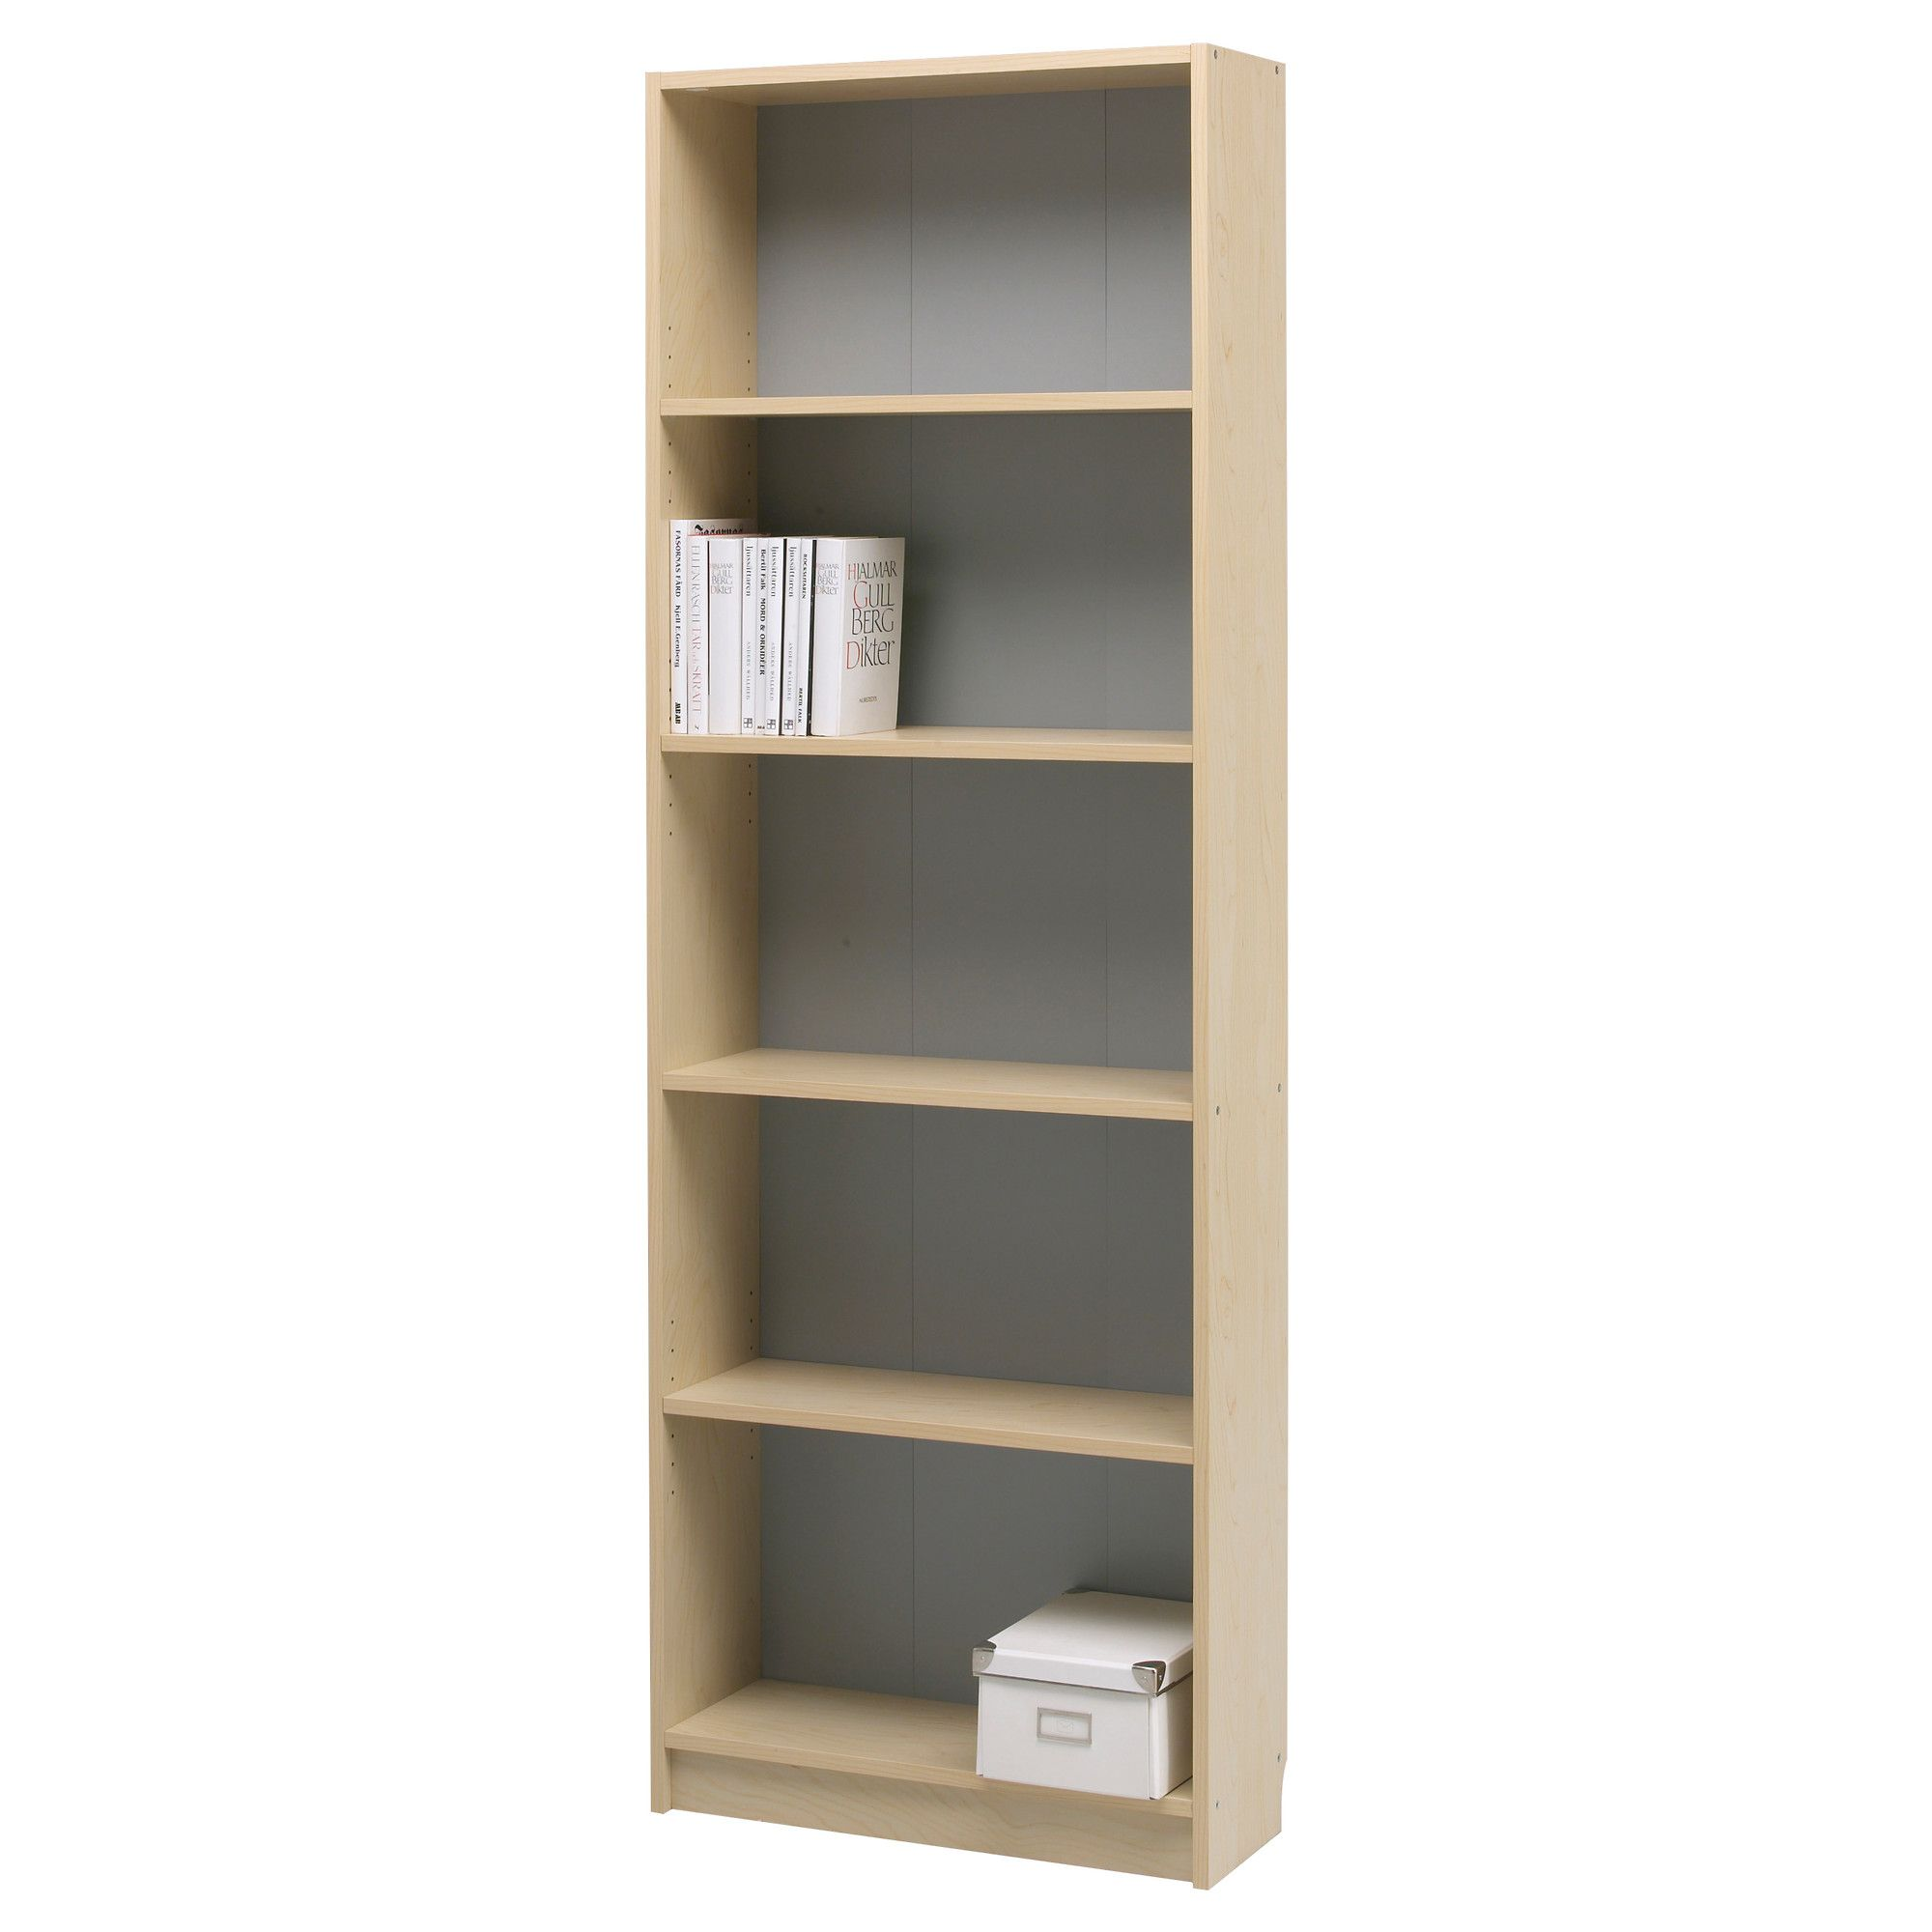 Shallow KILBY Bookcase Product Dimensions Width 26 3 8 Depth 9